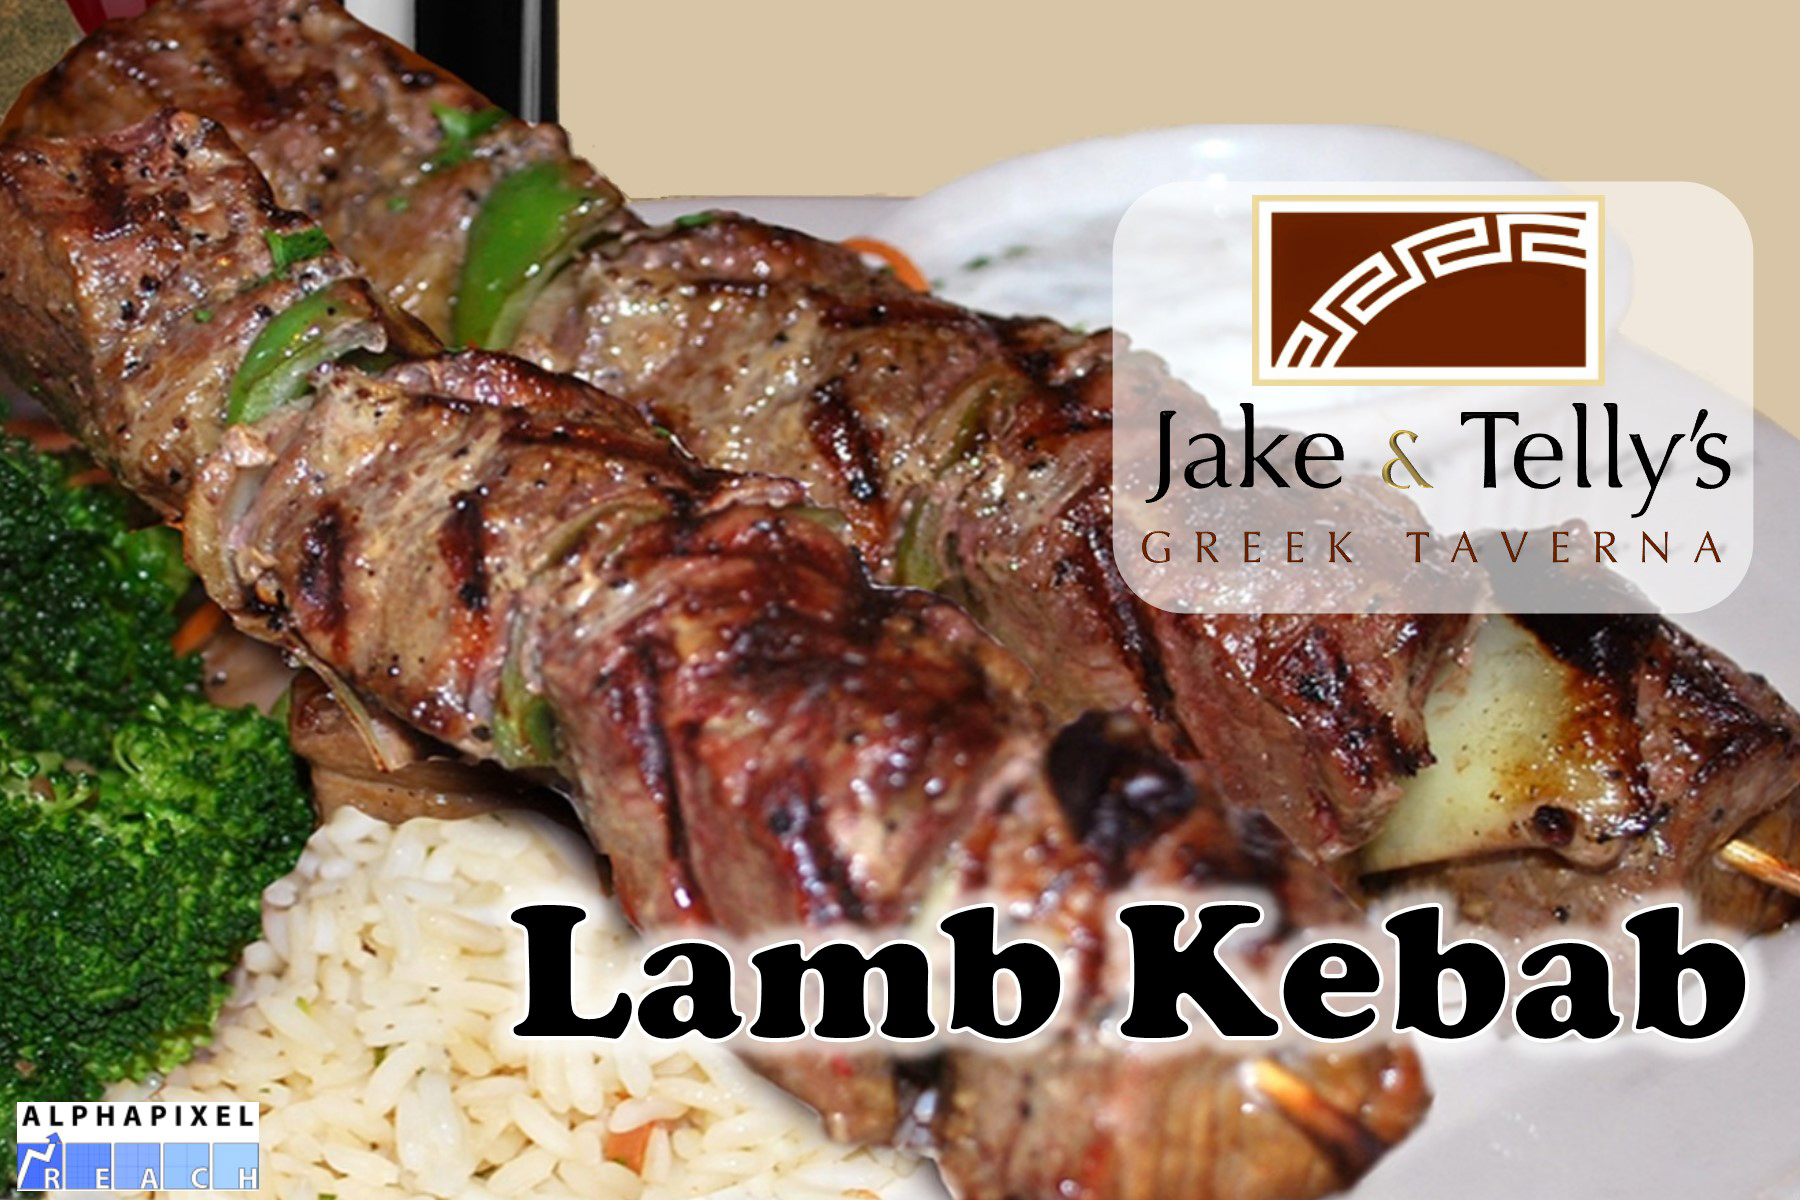 Entrees at Jake and Telly's: Lamb Kebab (Arní Kebabs). A close up photo of our lamb kebab. Colorado lamb skewered with bell pepper and onion and served with herbed rice, butter braised green beans, and our house-made tzatziki. Jake and Telly's Logo and the AlphaPixel Reach Logo are present.